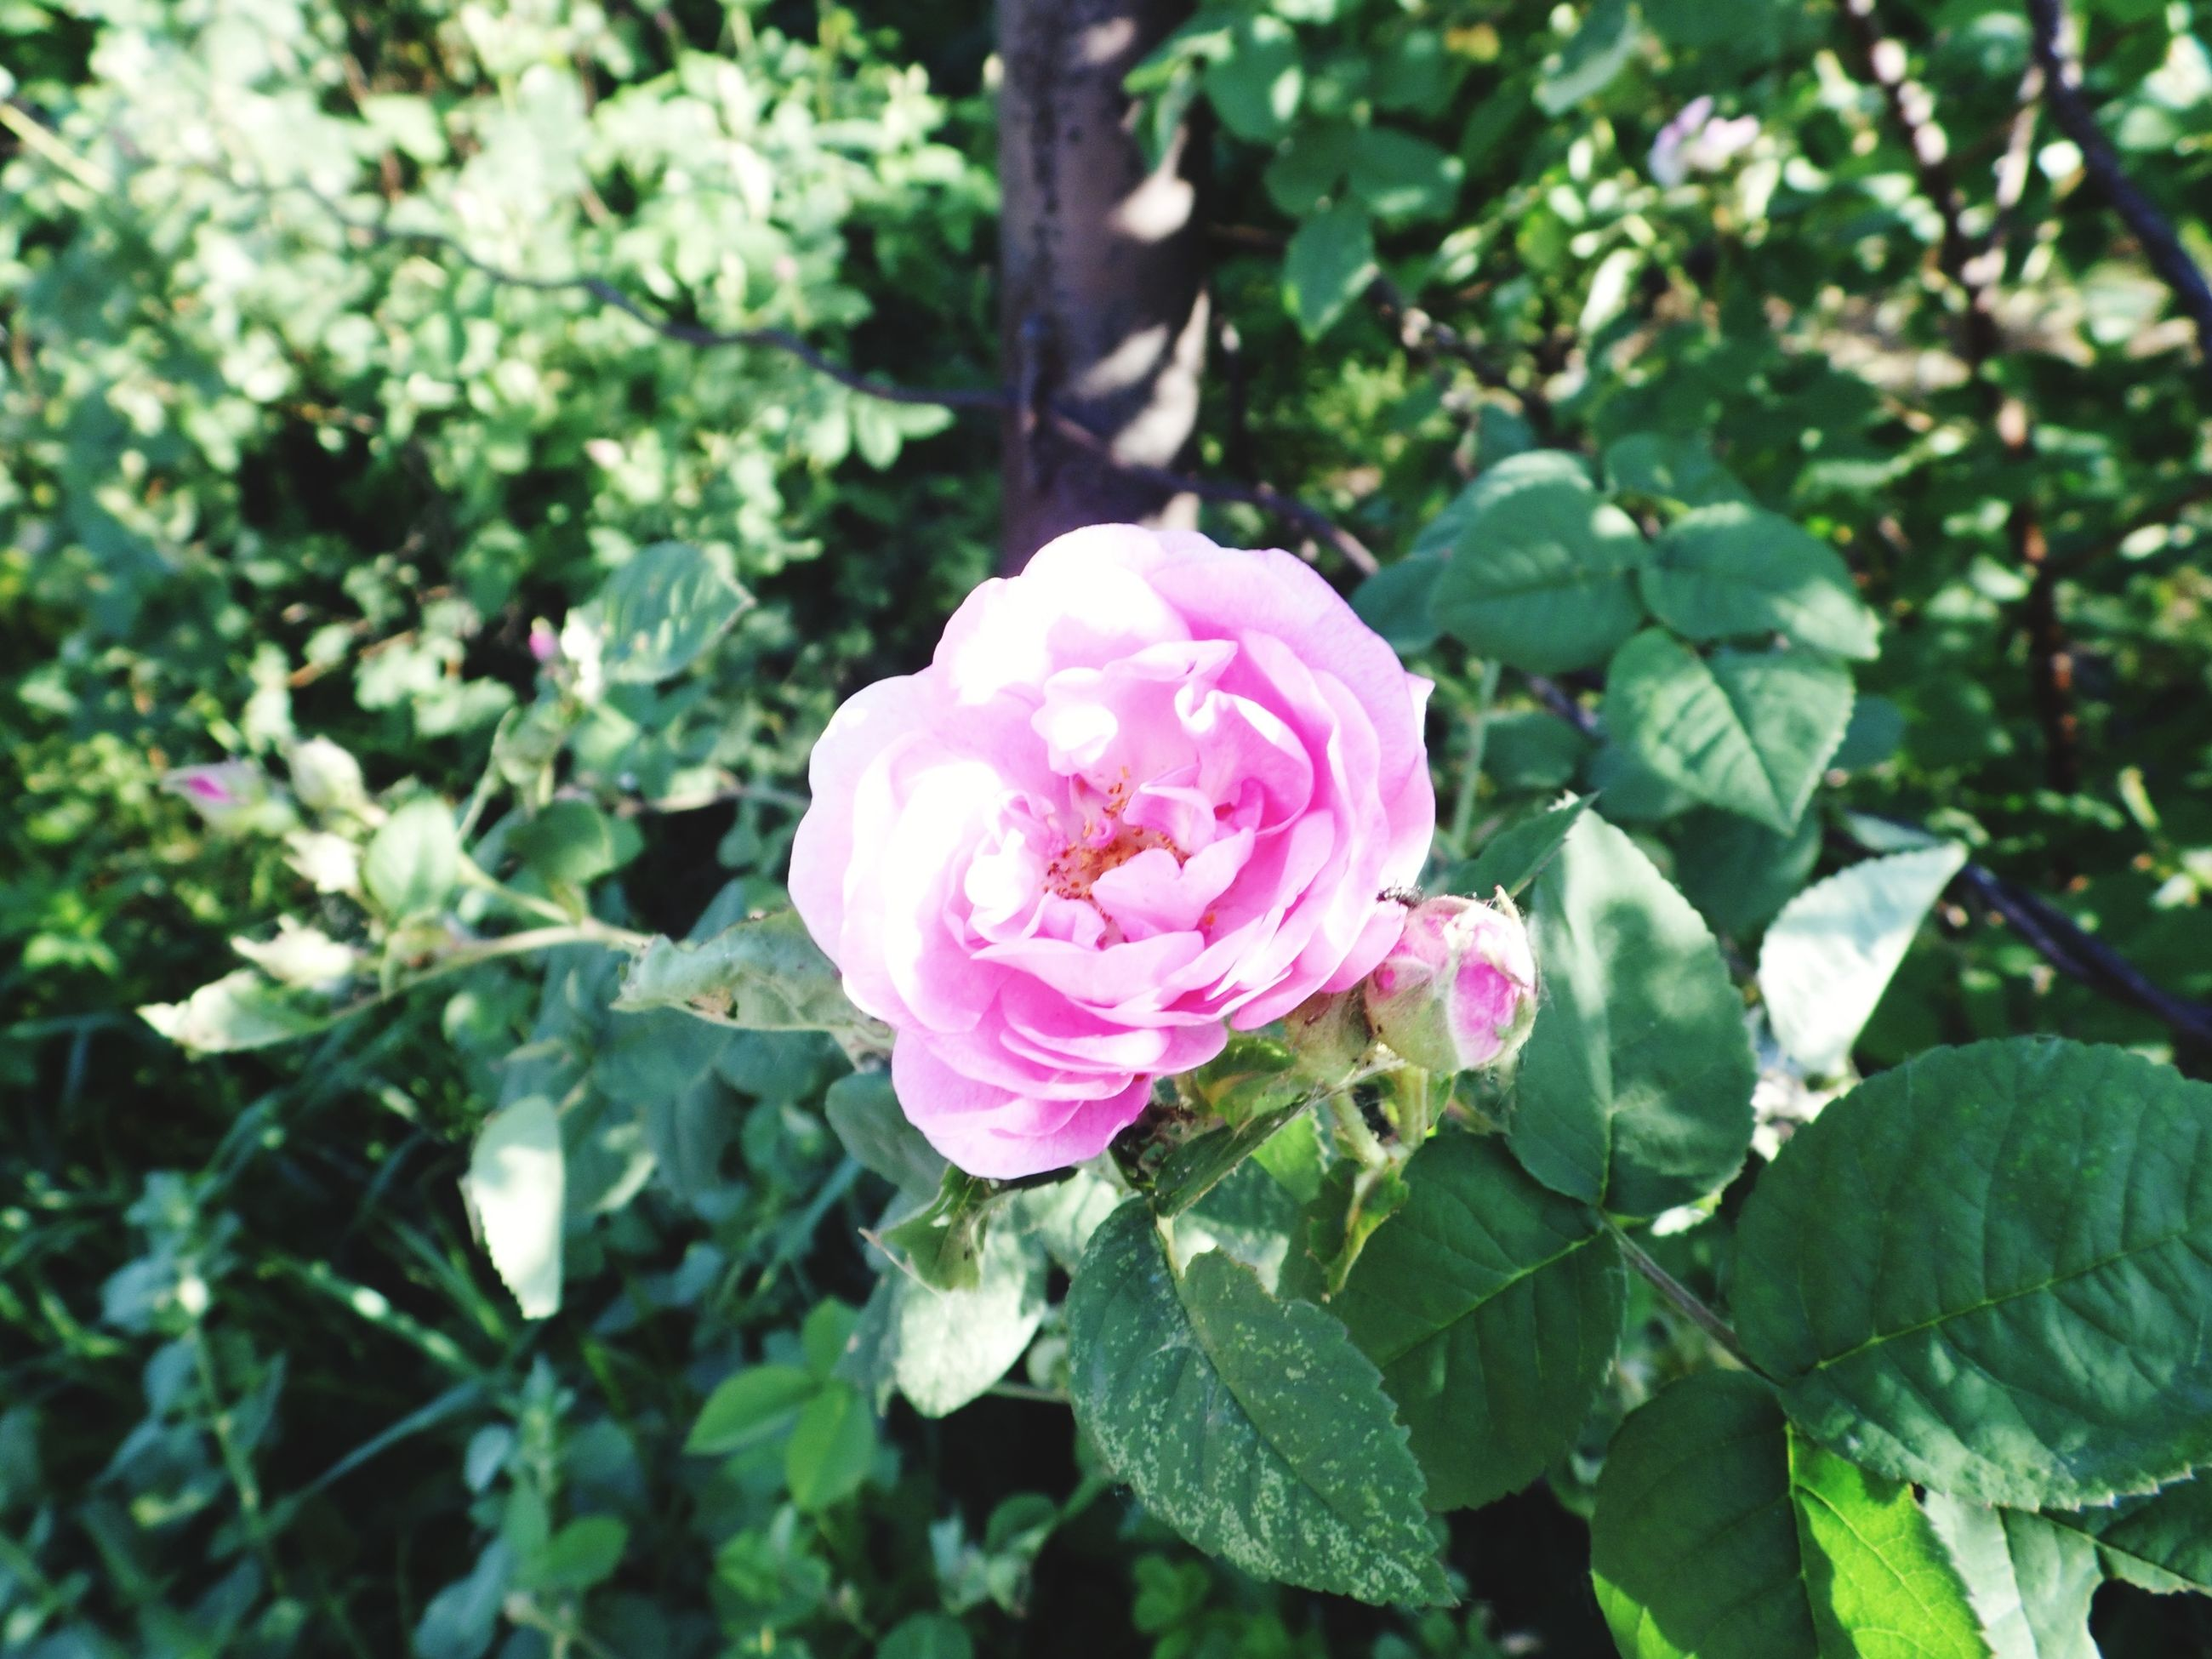 flower, freshness, petal, fragility, growth, flower head, rose - flower, pink color, beauty in nature, leaf, close-up, blooming, nature, focus on foreground, plant, single flower, green color, rose, in bloom, park - man made space